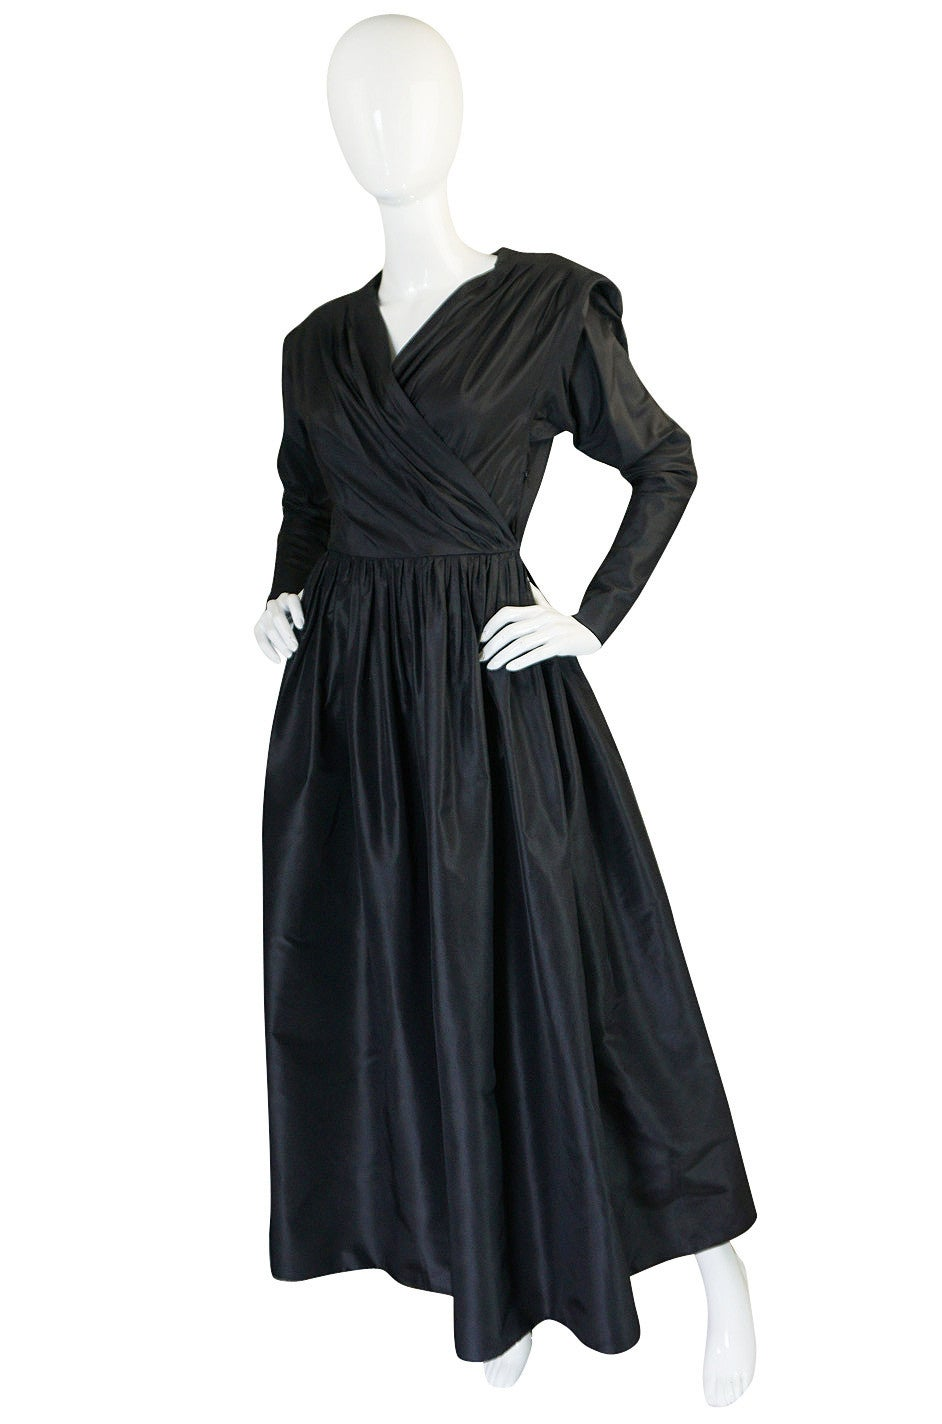 This is an exceptional silk taffeta, full length dress with a stunning cut and lines. It is just phenomenal. The skirt is very full and yet very light because of the fabric choice that allows it to retain the shape and fullness Yves intended. I love